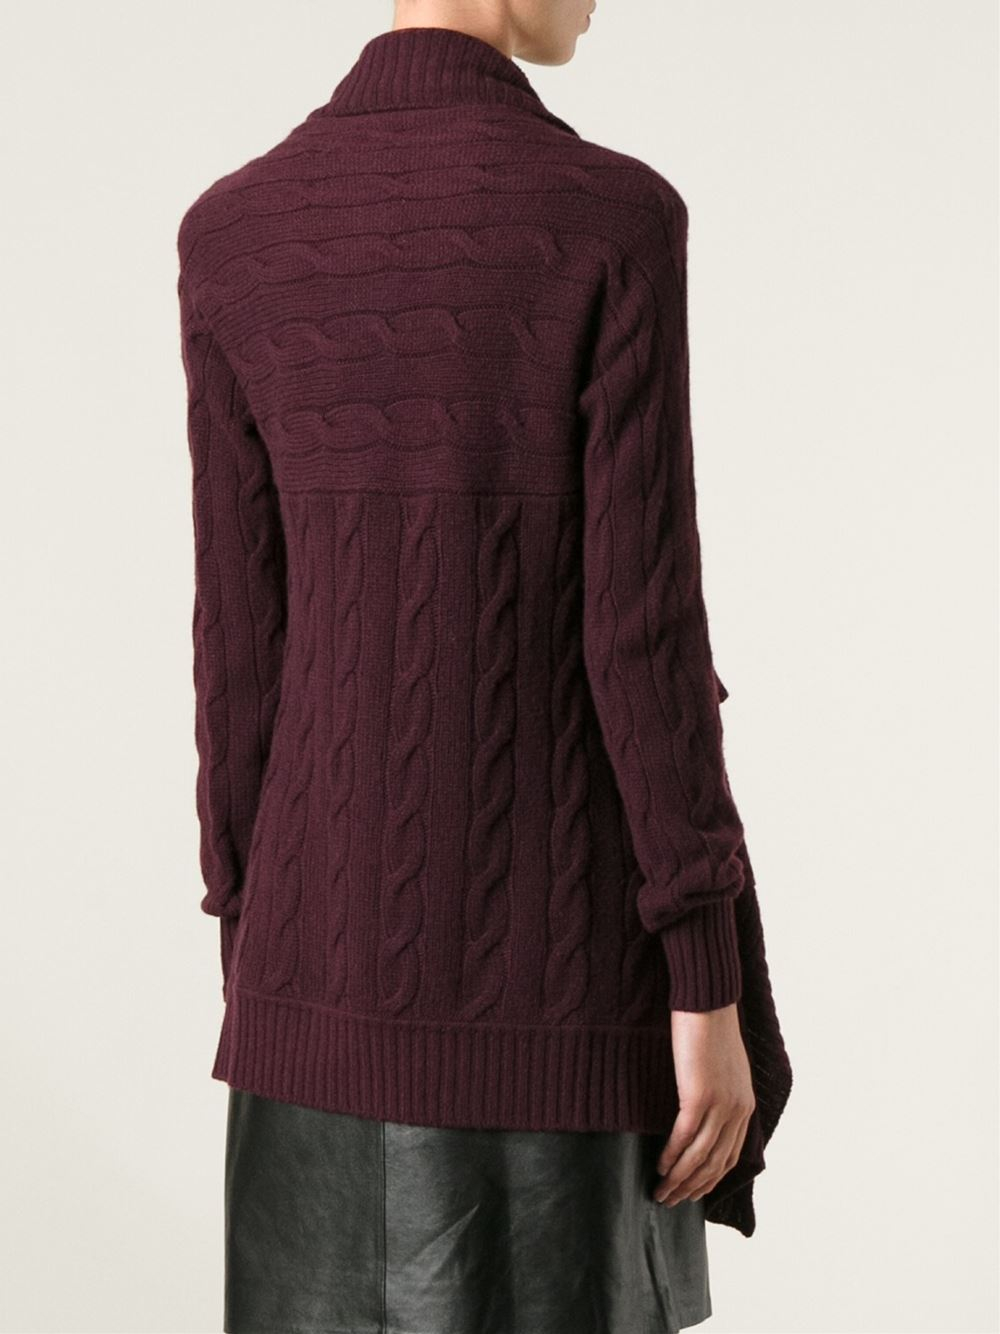 Ralph lauren black label Cable Knit Waterfall Cardigan in Purple ...